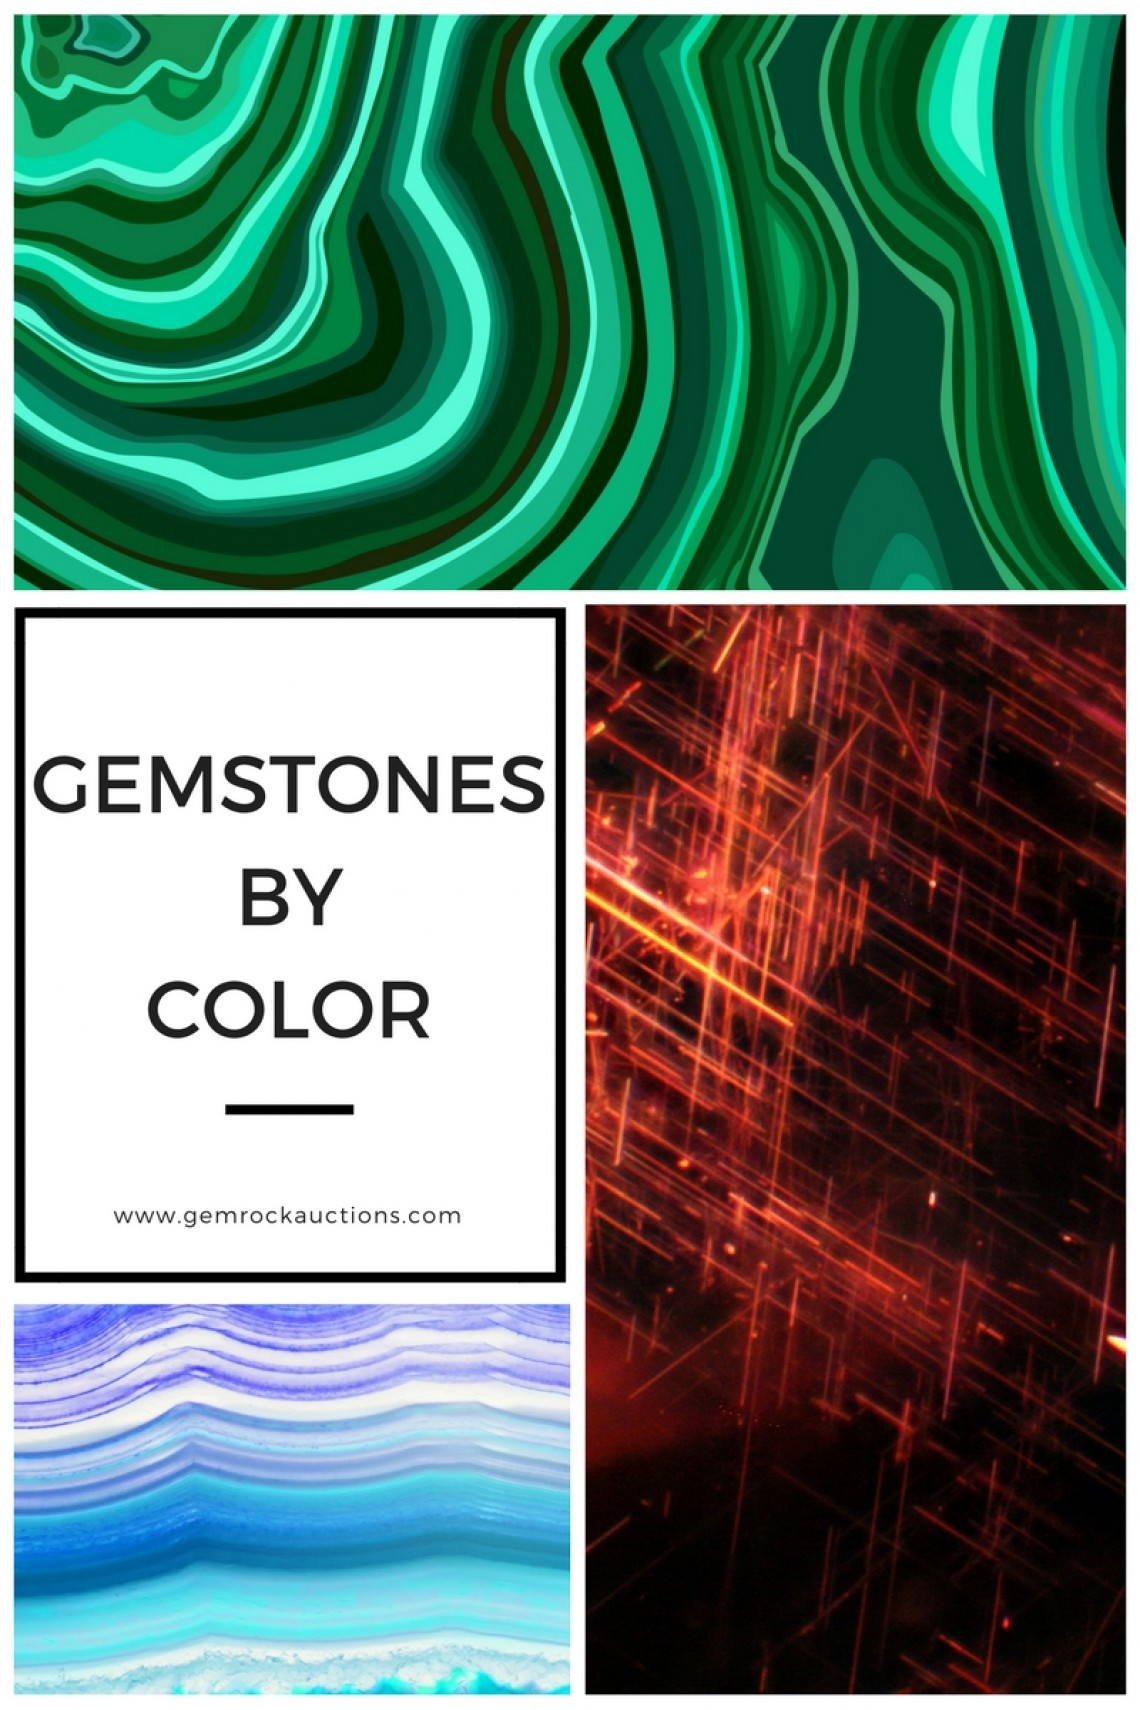 gemstone colors List Of Gemstones By Color